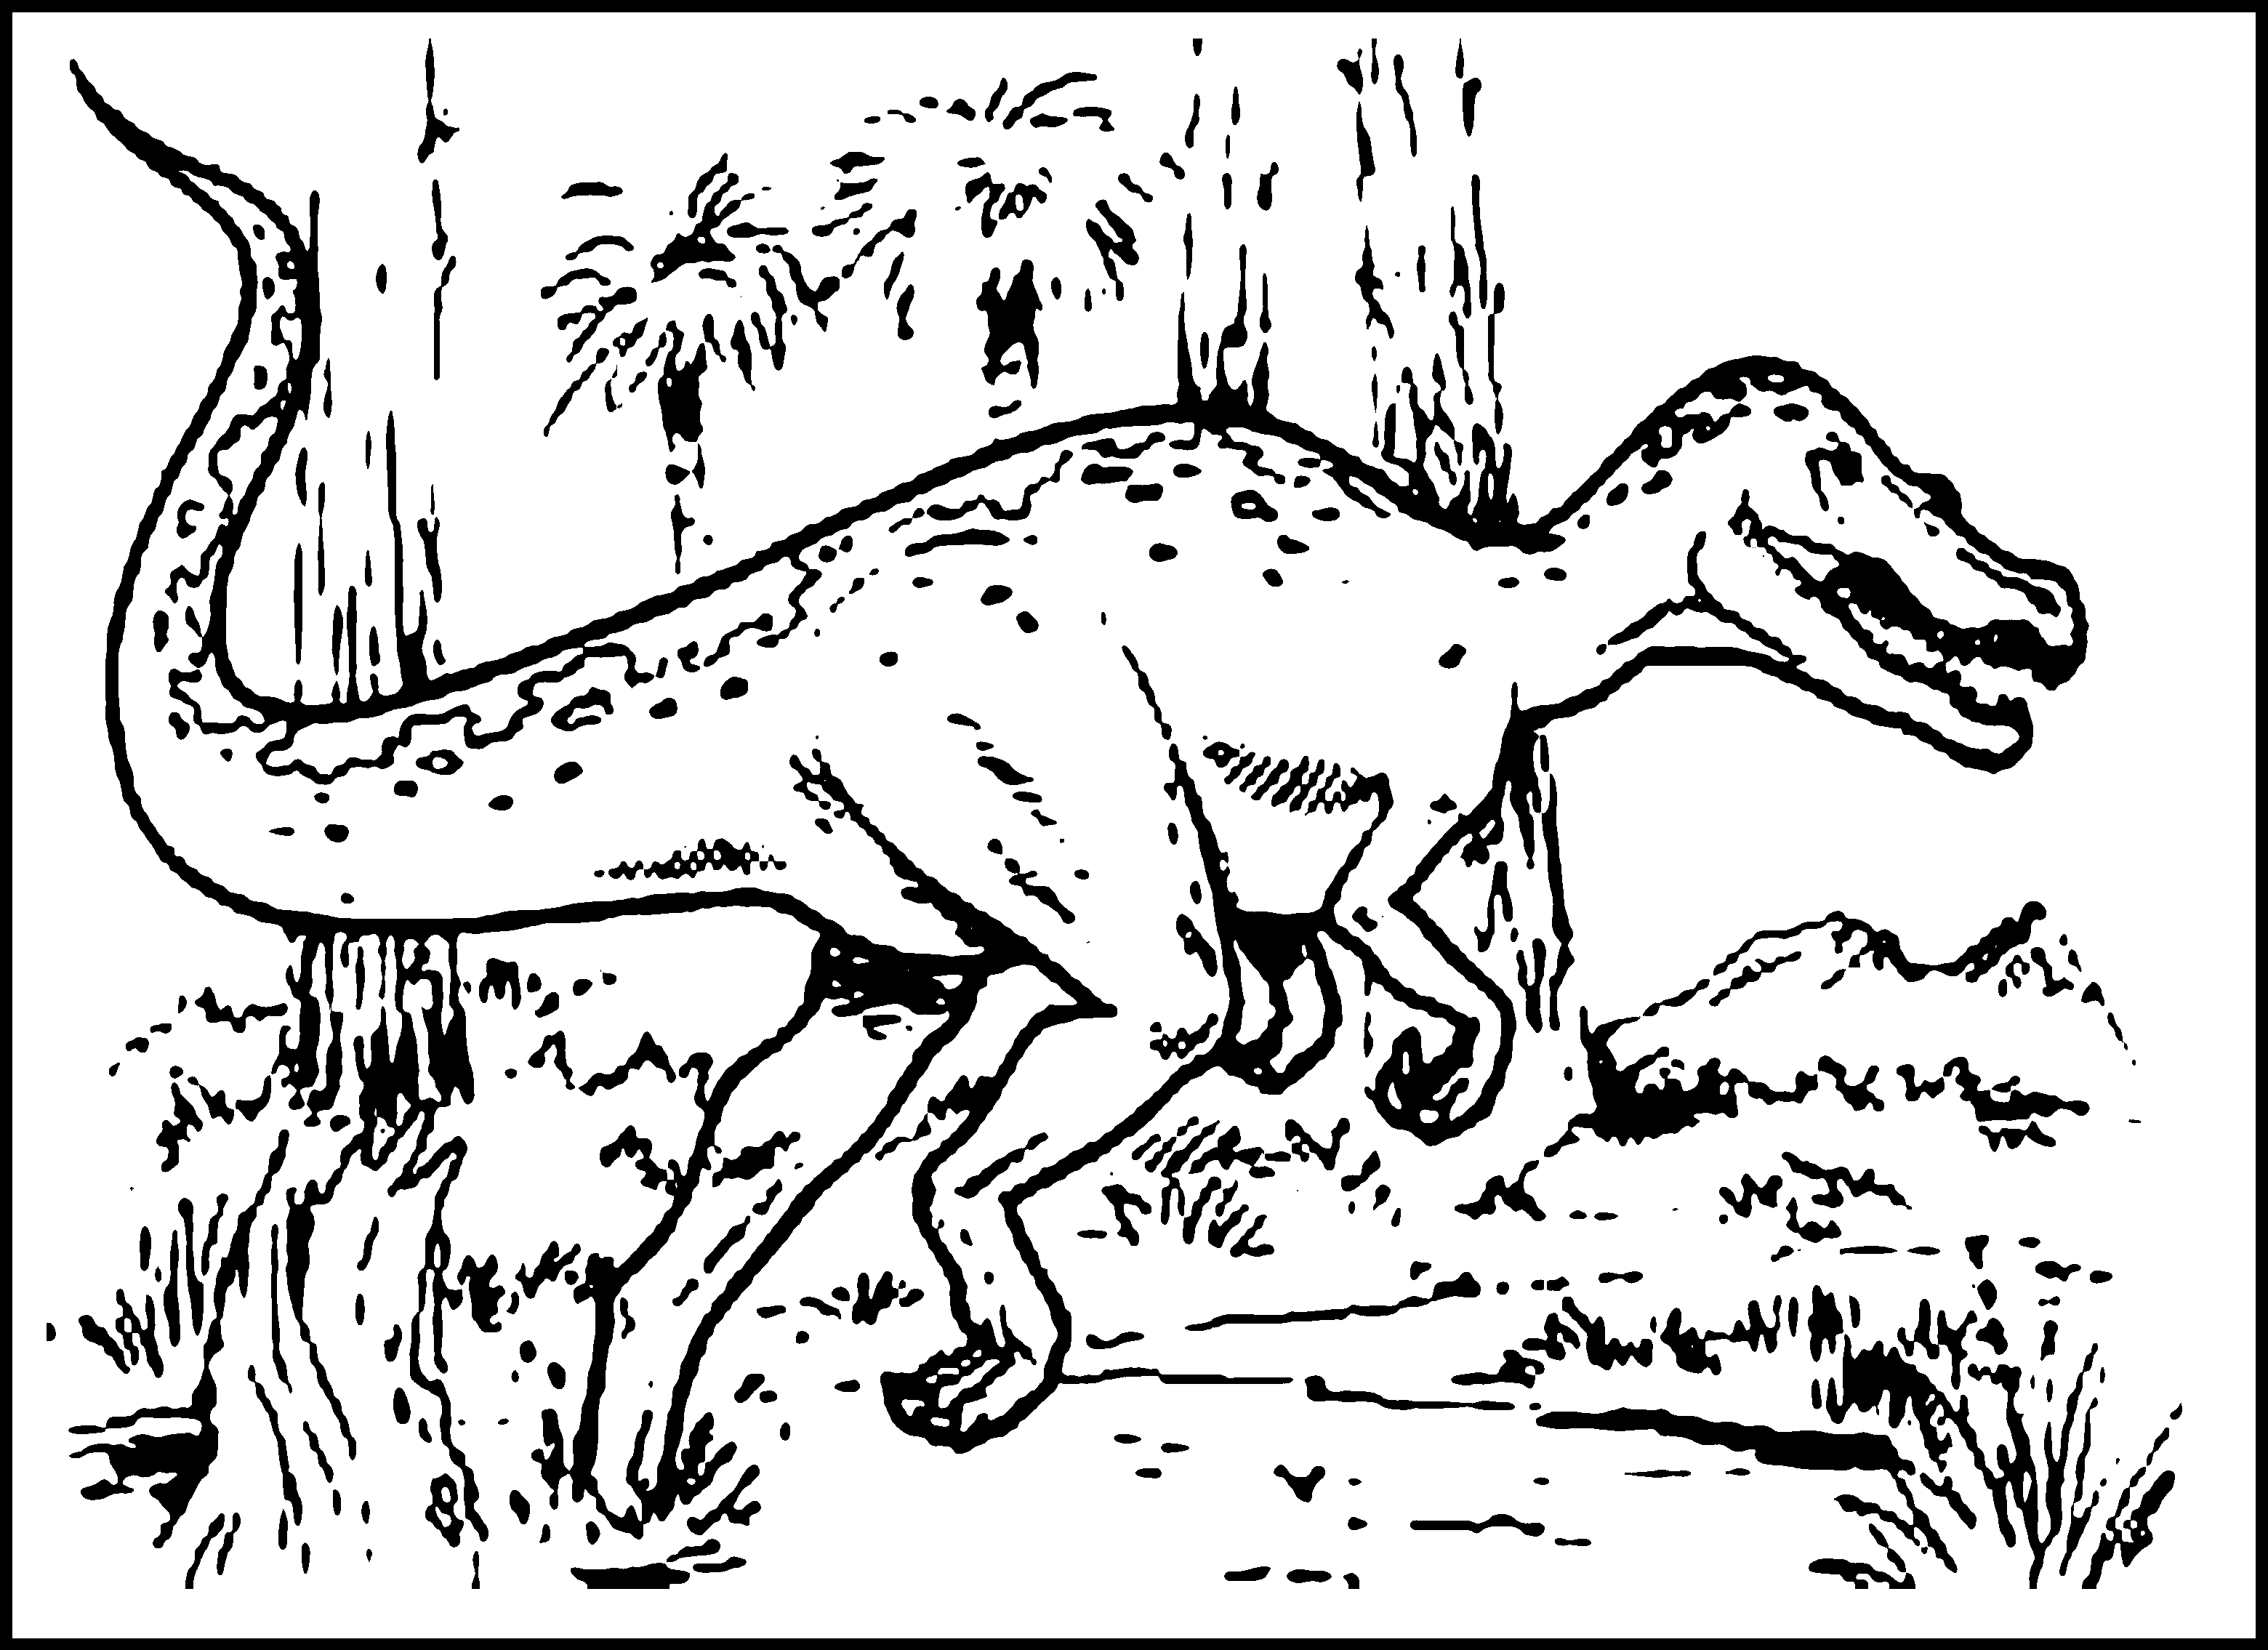 dinosaur colouring pictures to print coloring pages dinosaur free printable coloring pages pictures to print dinosaur colouring